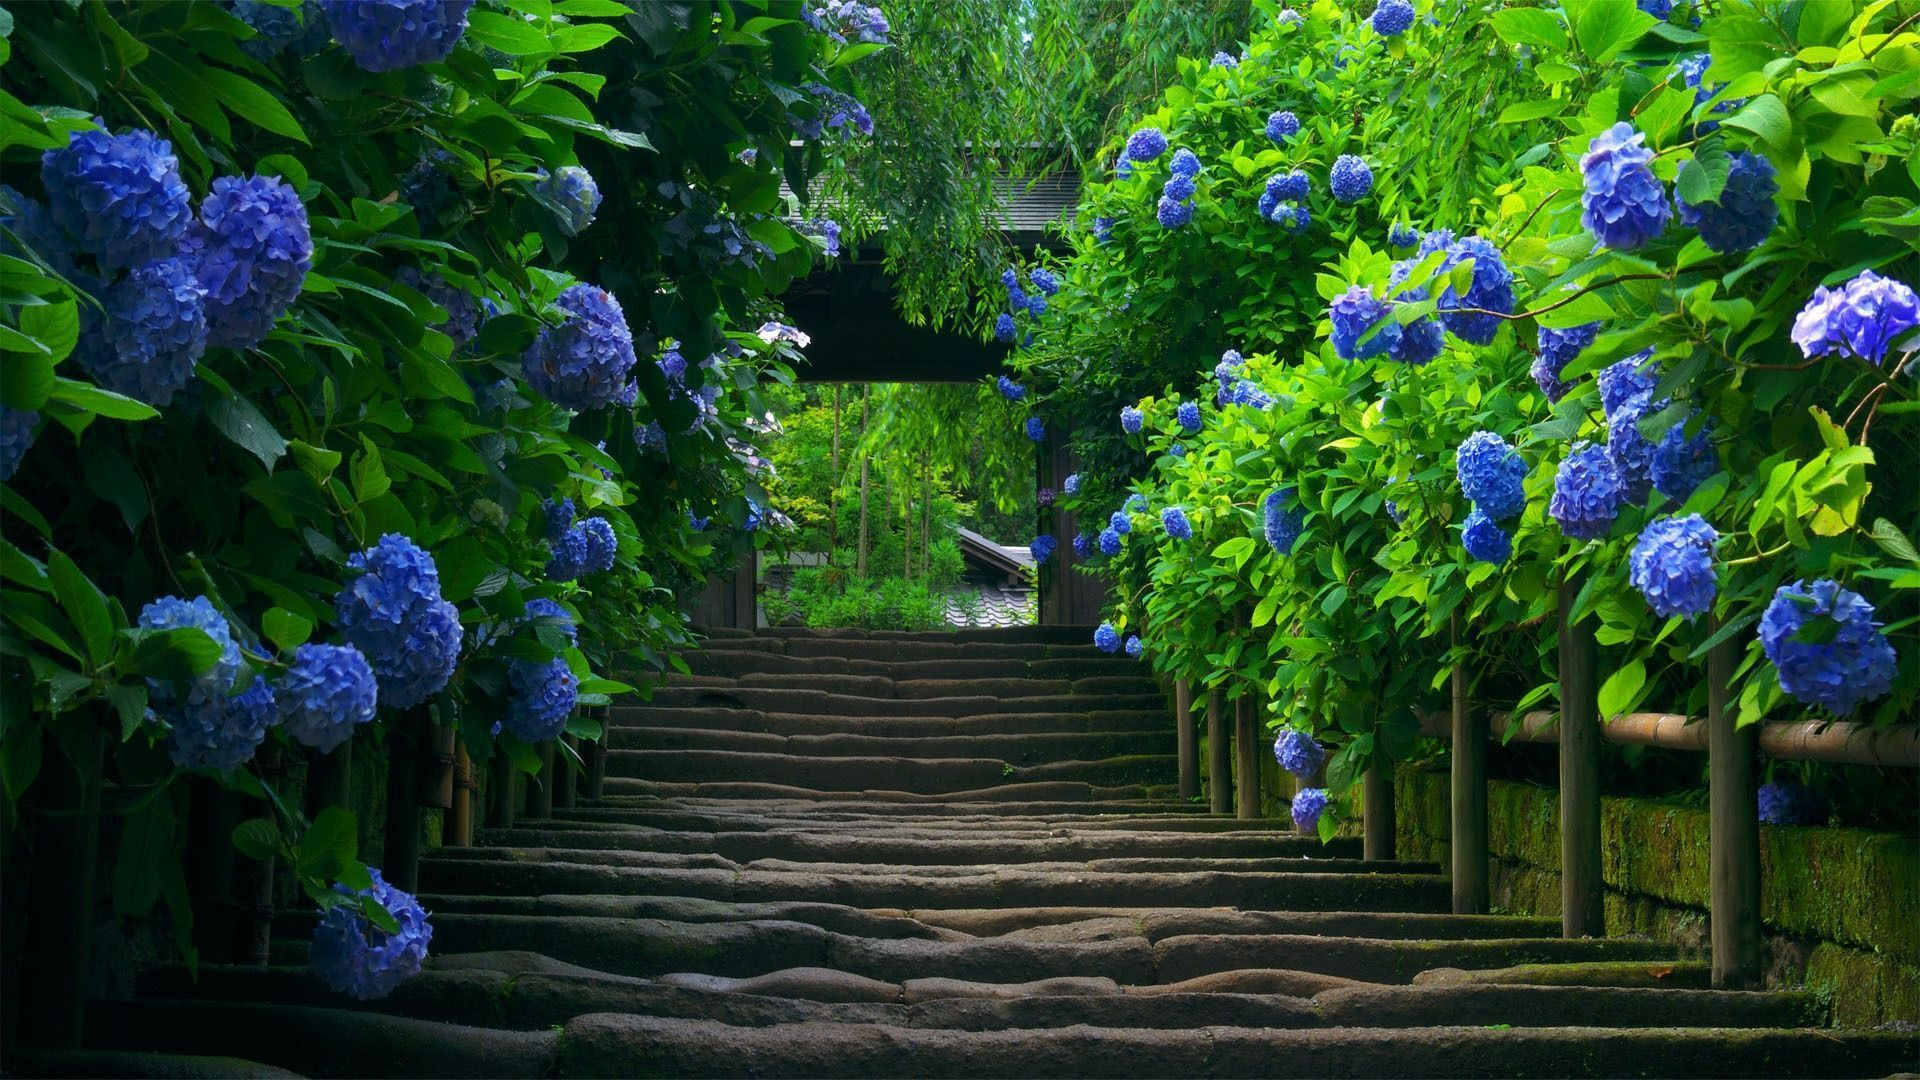 Flowerwallpaperbackgrounds stairs blue flowers desktop flowerwallpaperbackgrounds stairs blue flowers desktop wallpapers and backgrounds 1920 x 1080 px izmirmasajfo